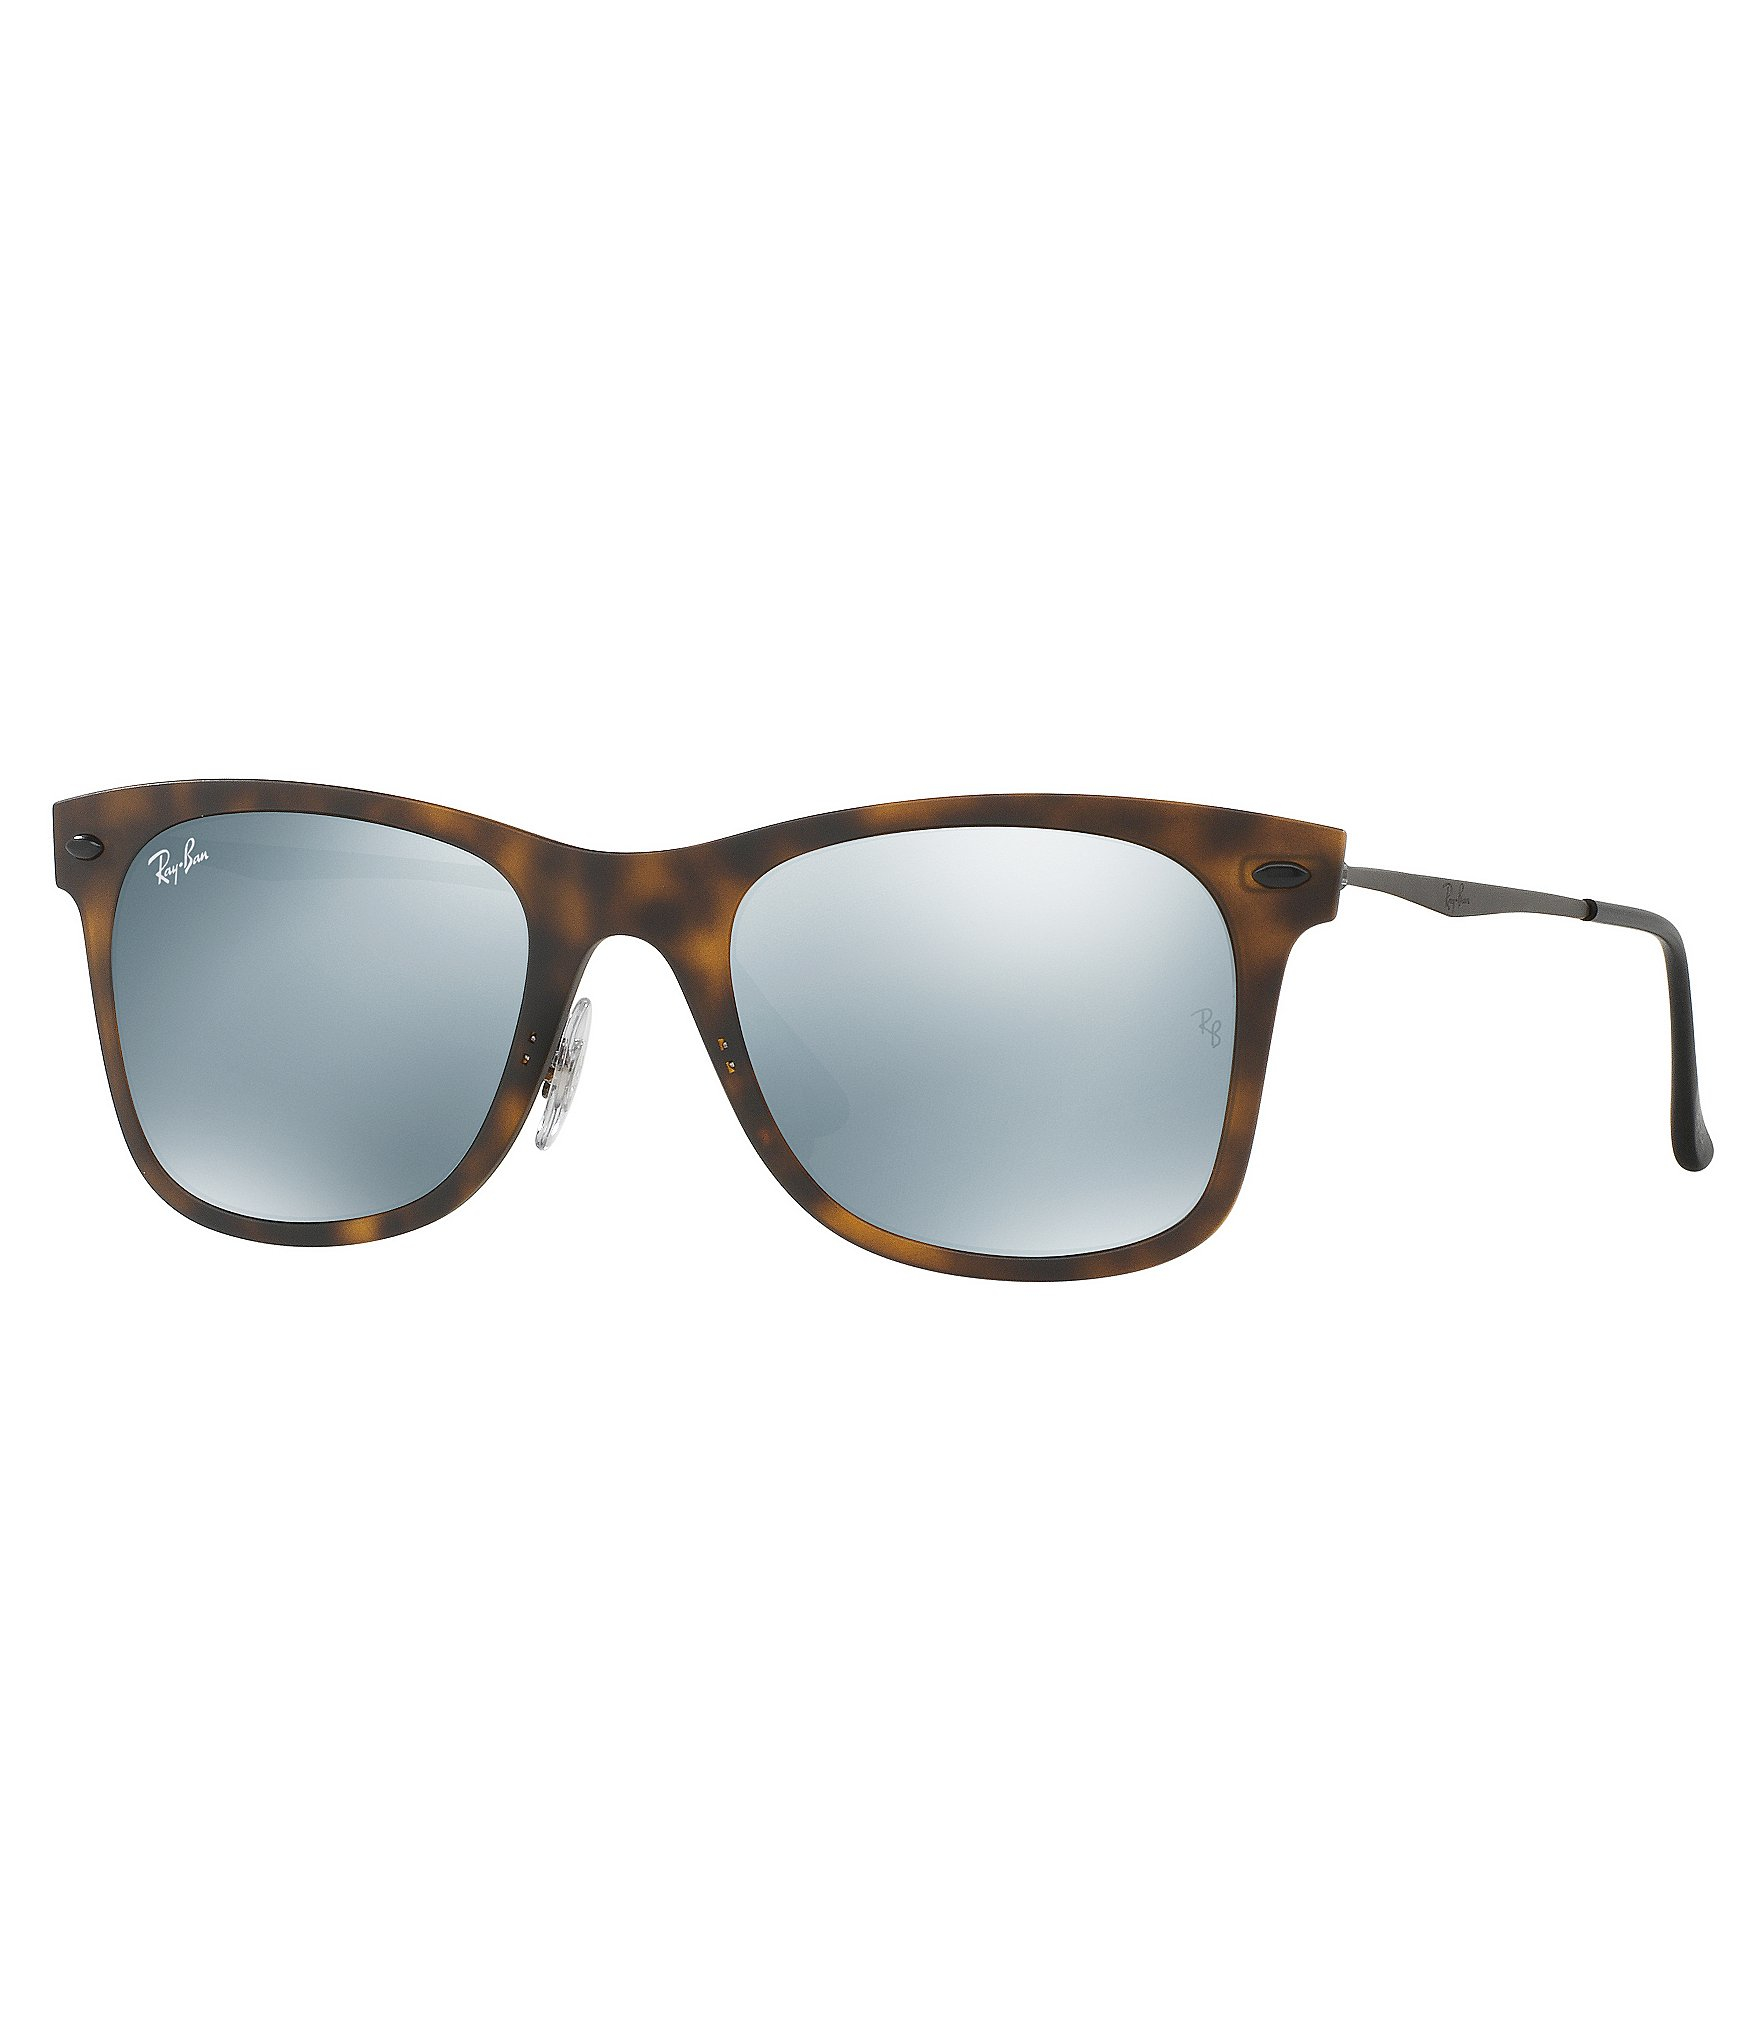 b7255c39a33 Lyst - Ray-Ban Light Ray Square Flash mirror Sunglasses in Gray